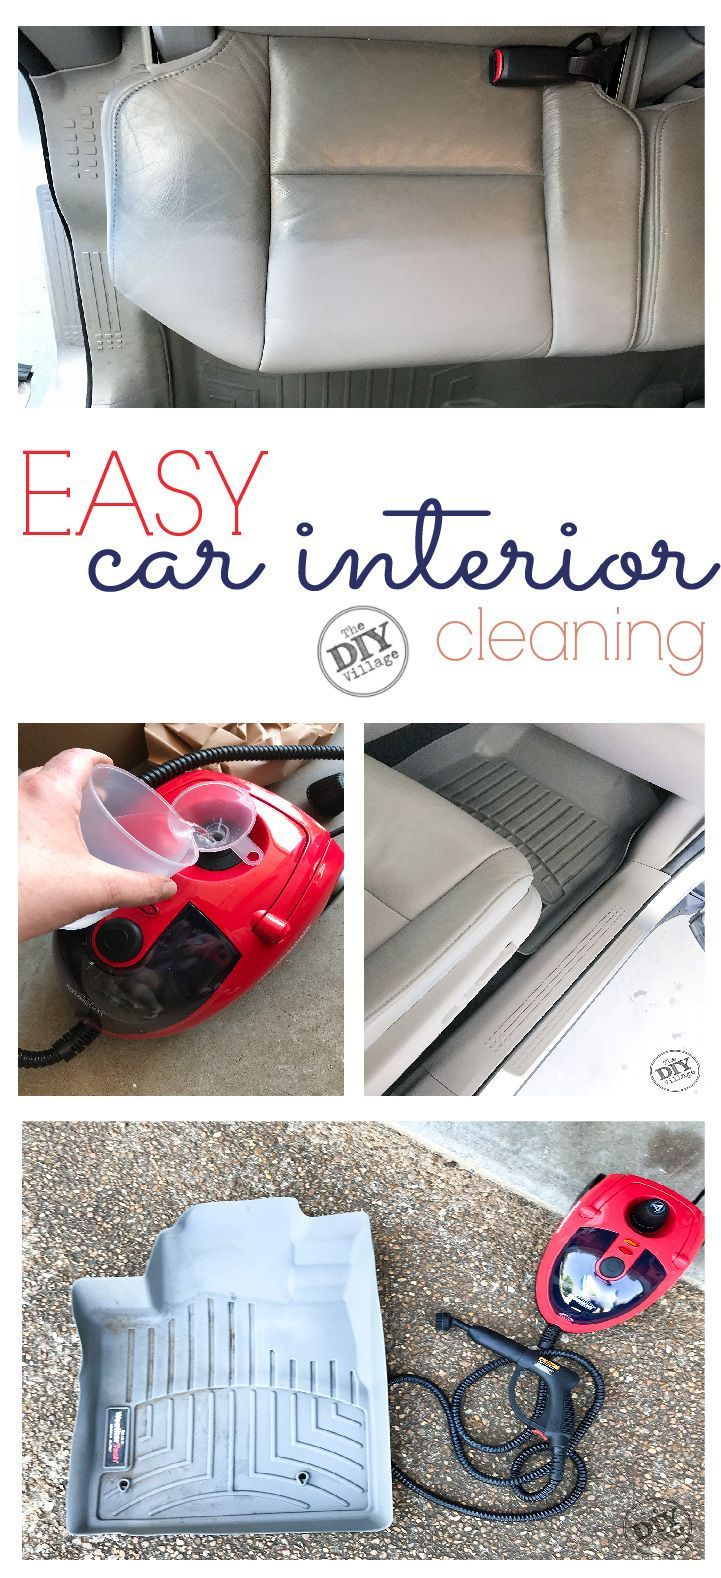 Clean Car Interior the Quick Way #cleaningcars